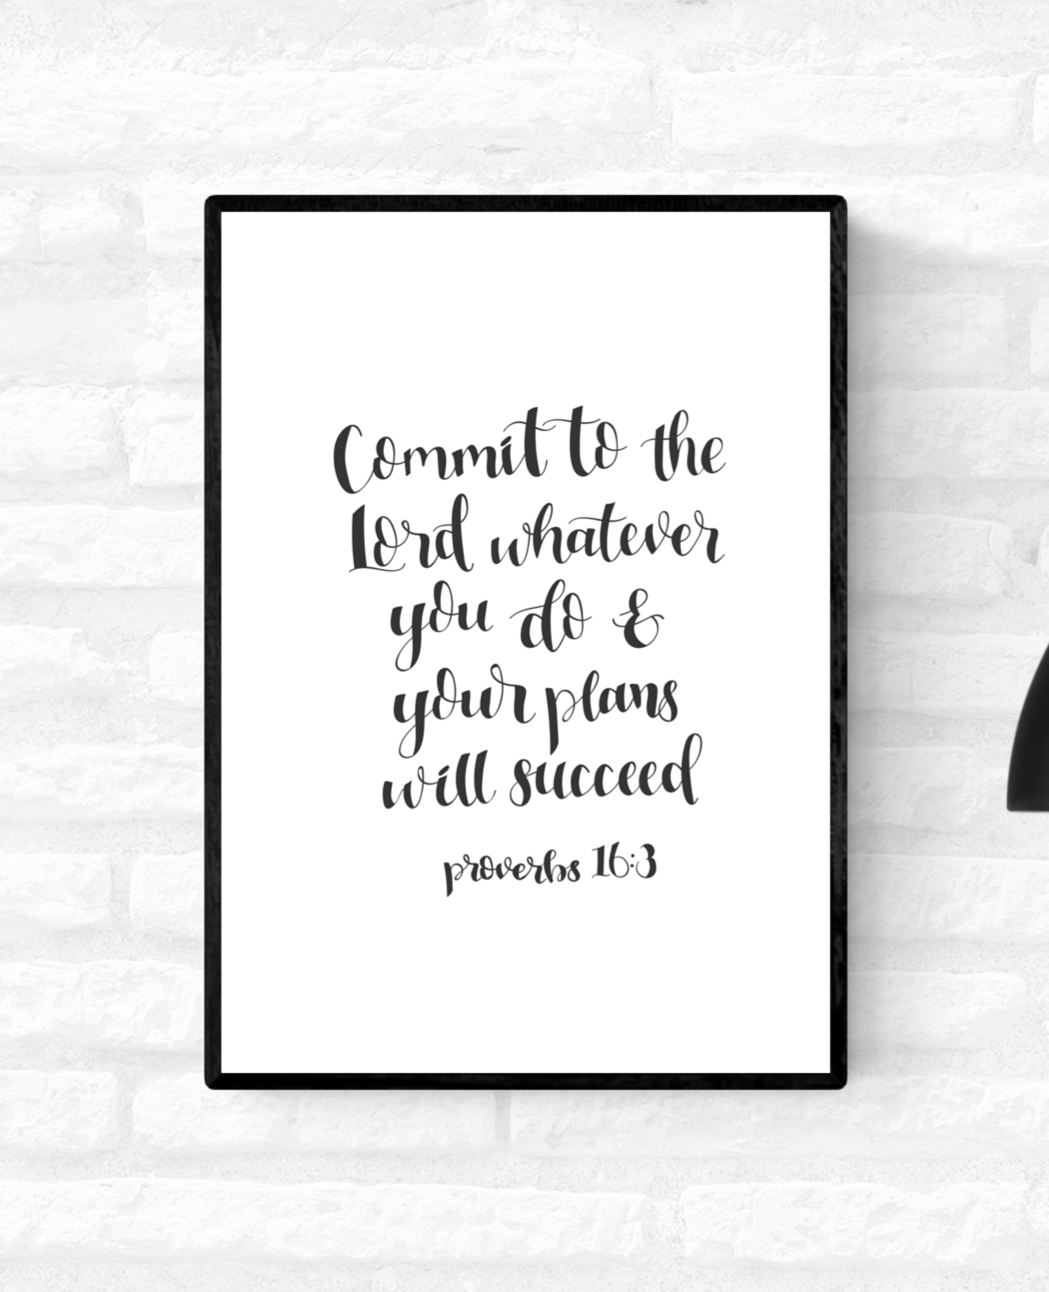 Framed wall quote scripture Proverbs 16:3 verse from the Holy Bible